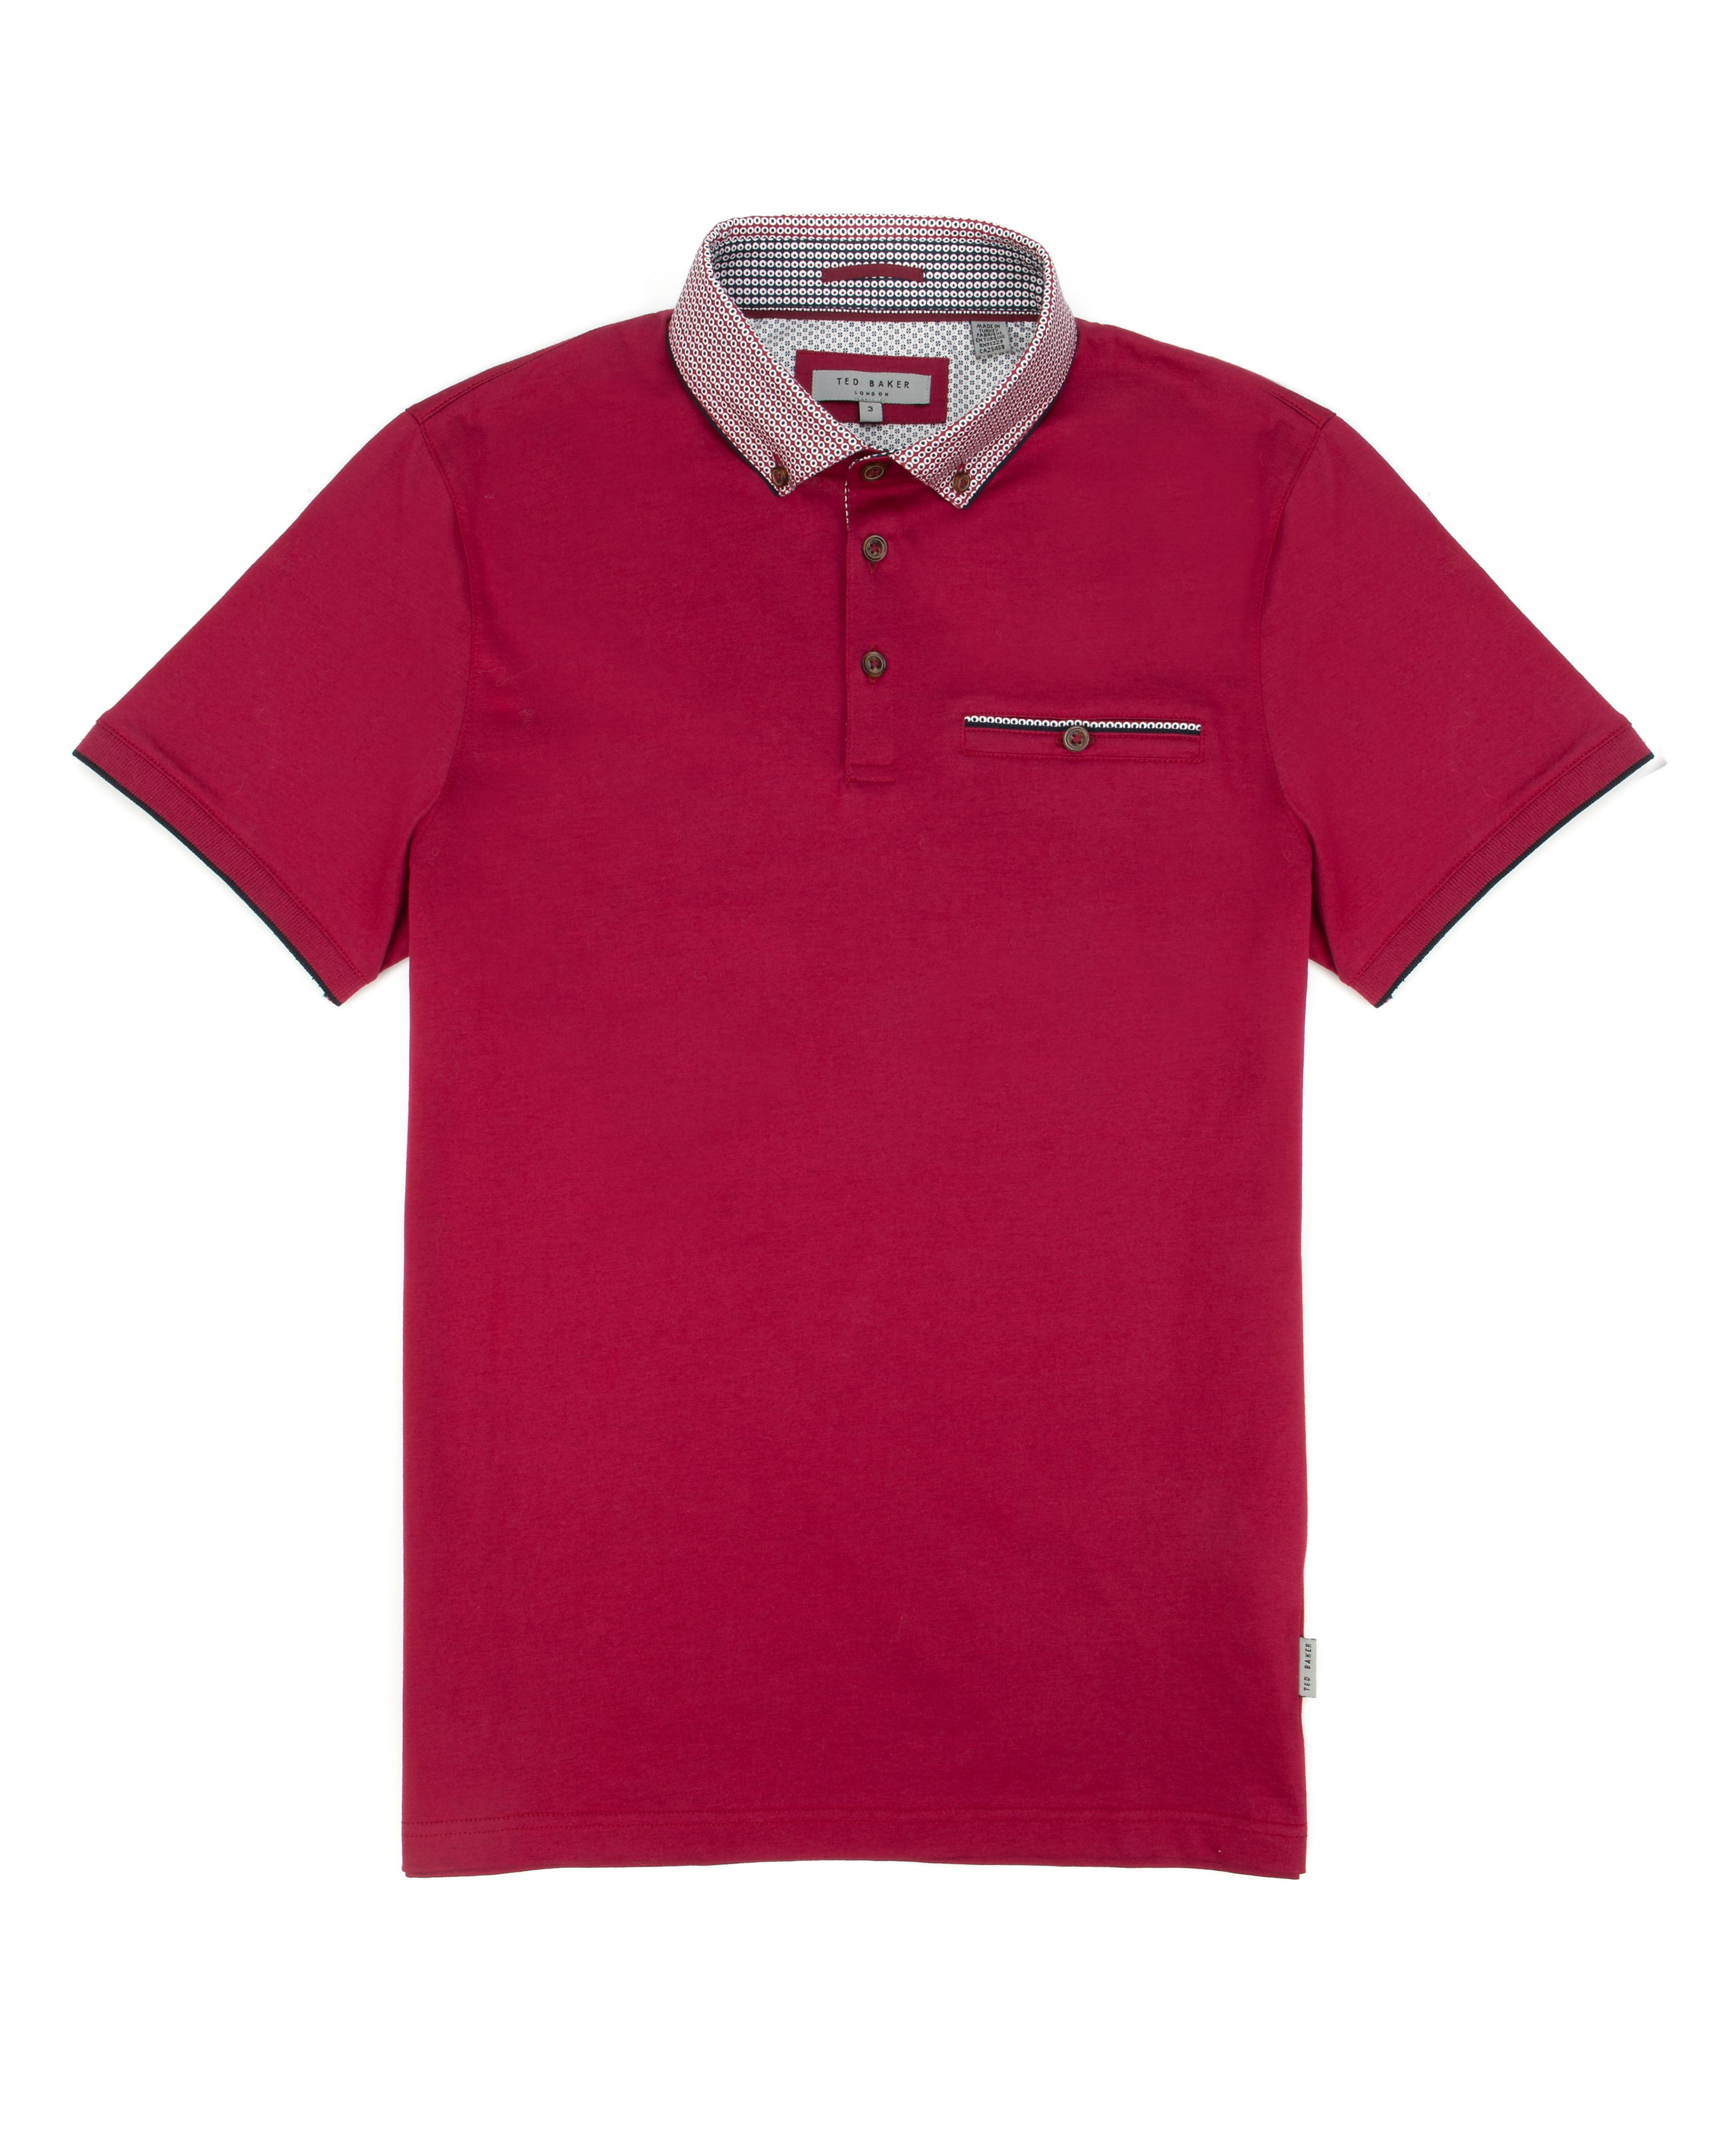 Jefferson short sleeve polo